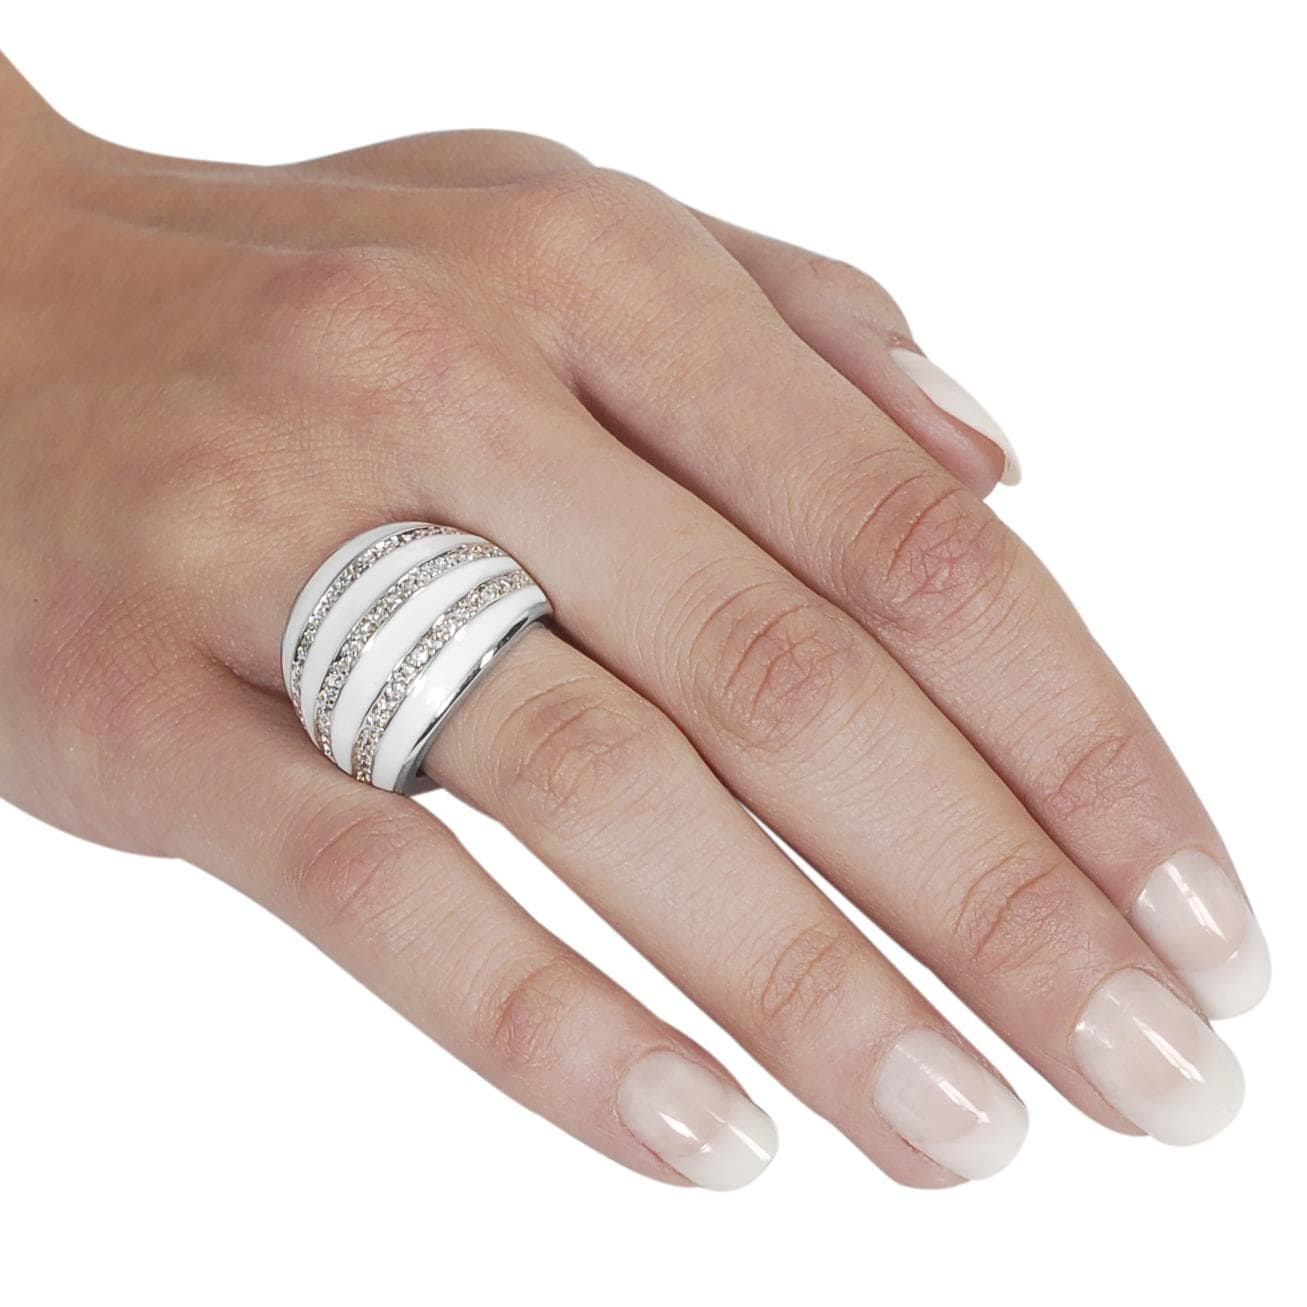 Journee Collection Silvertone Pave-set CZ White Epoxy Stripe Dome Ring